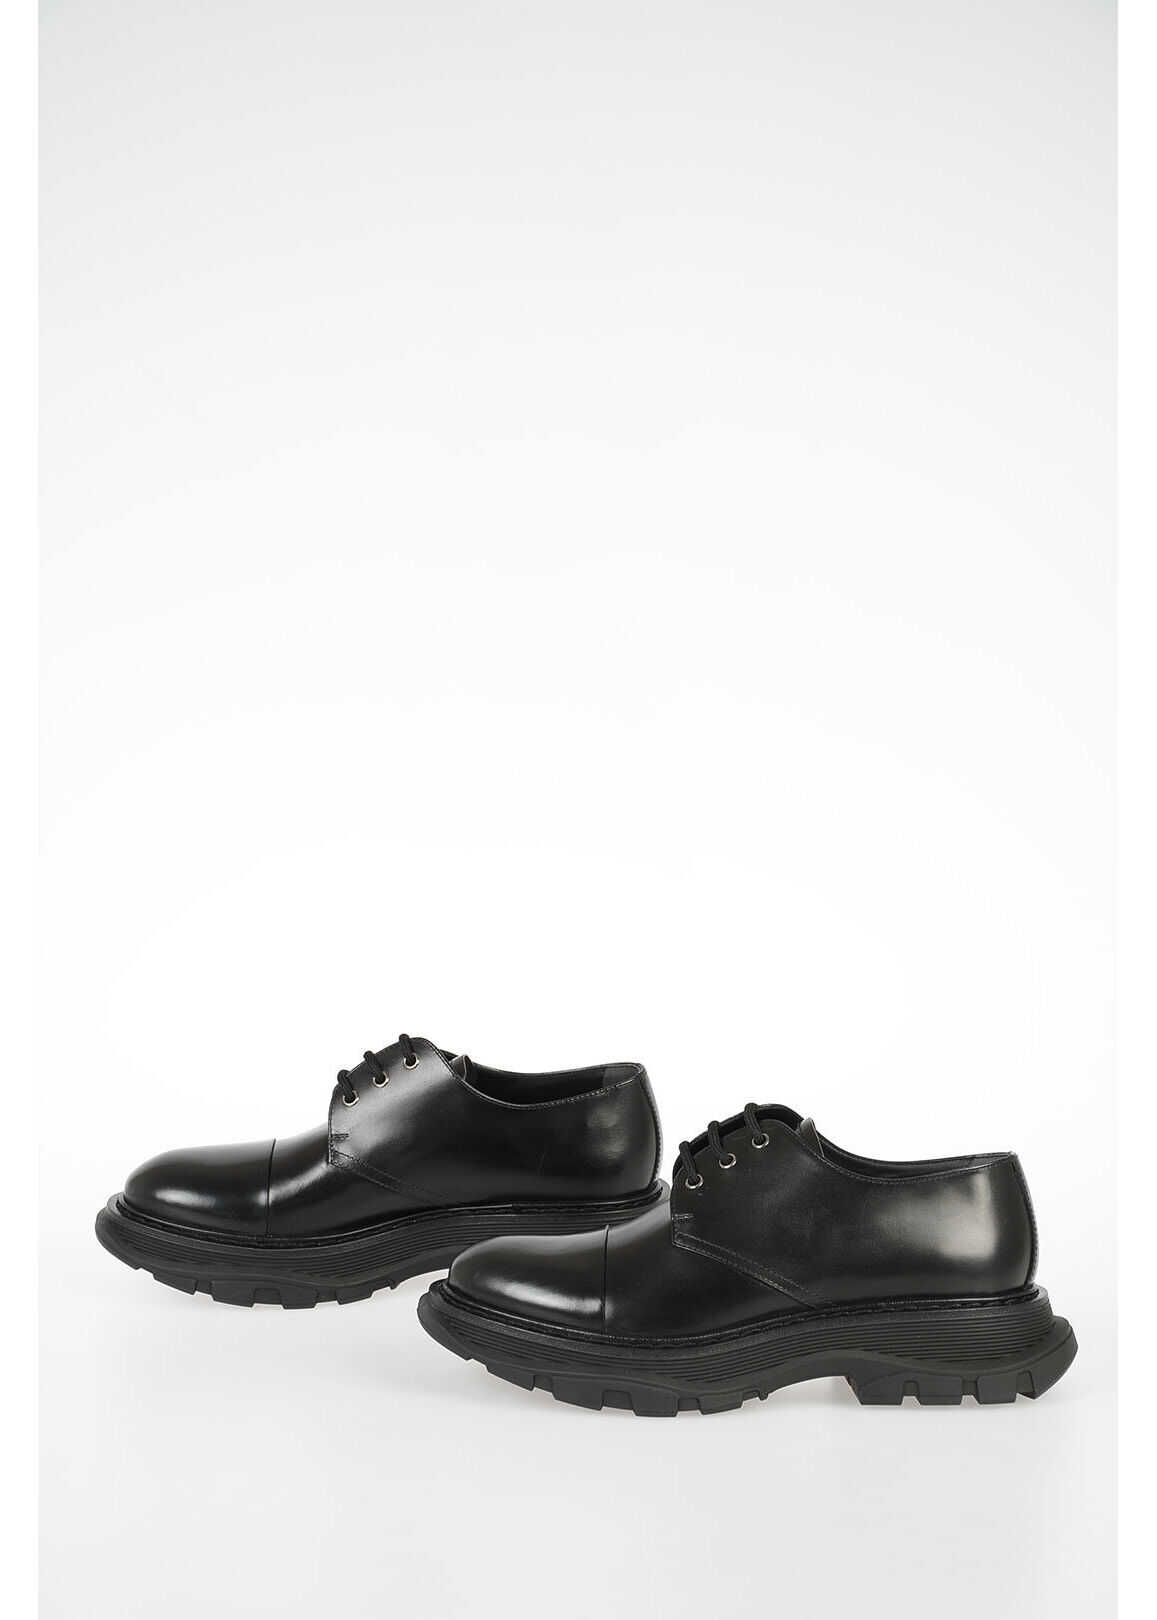 Alexander McQueen Leather Shoes BLACK